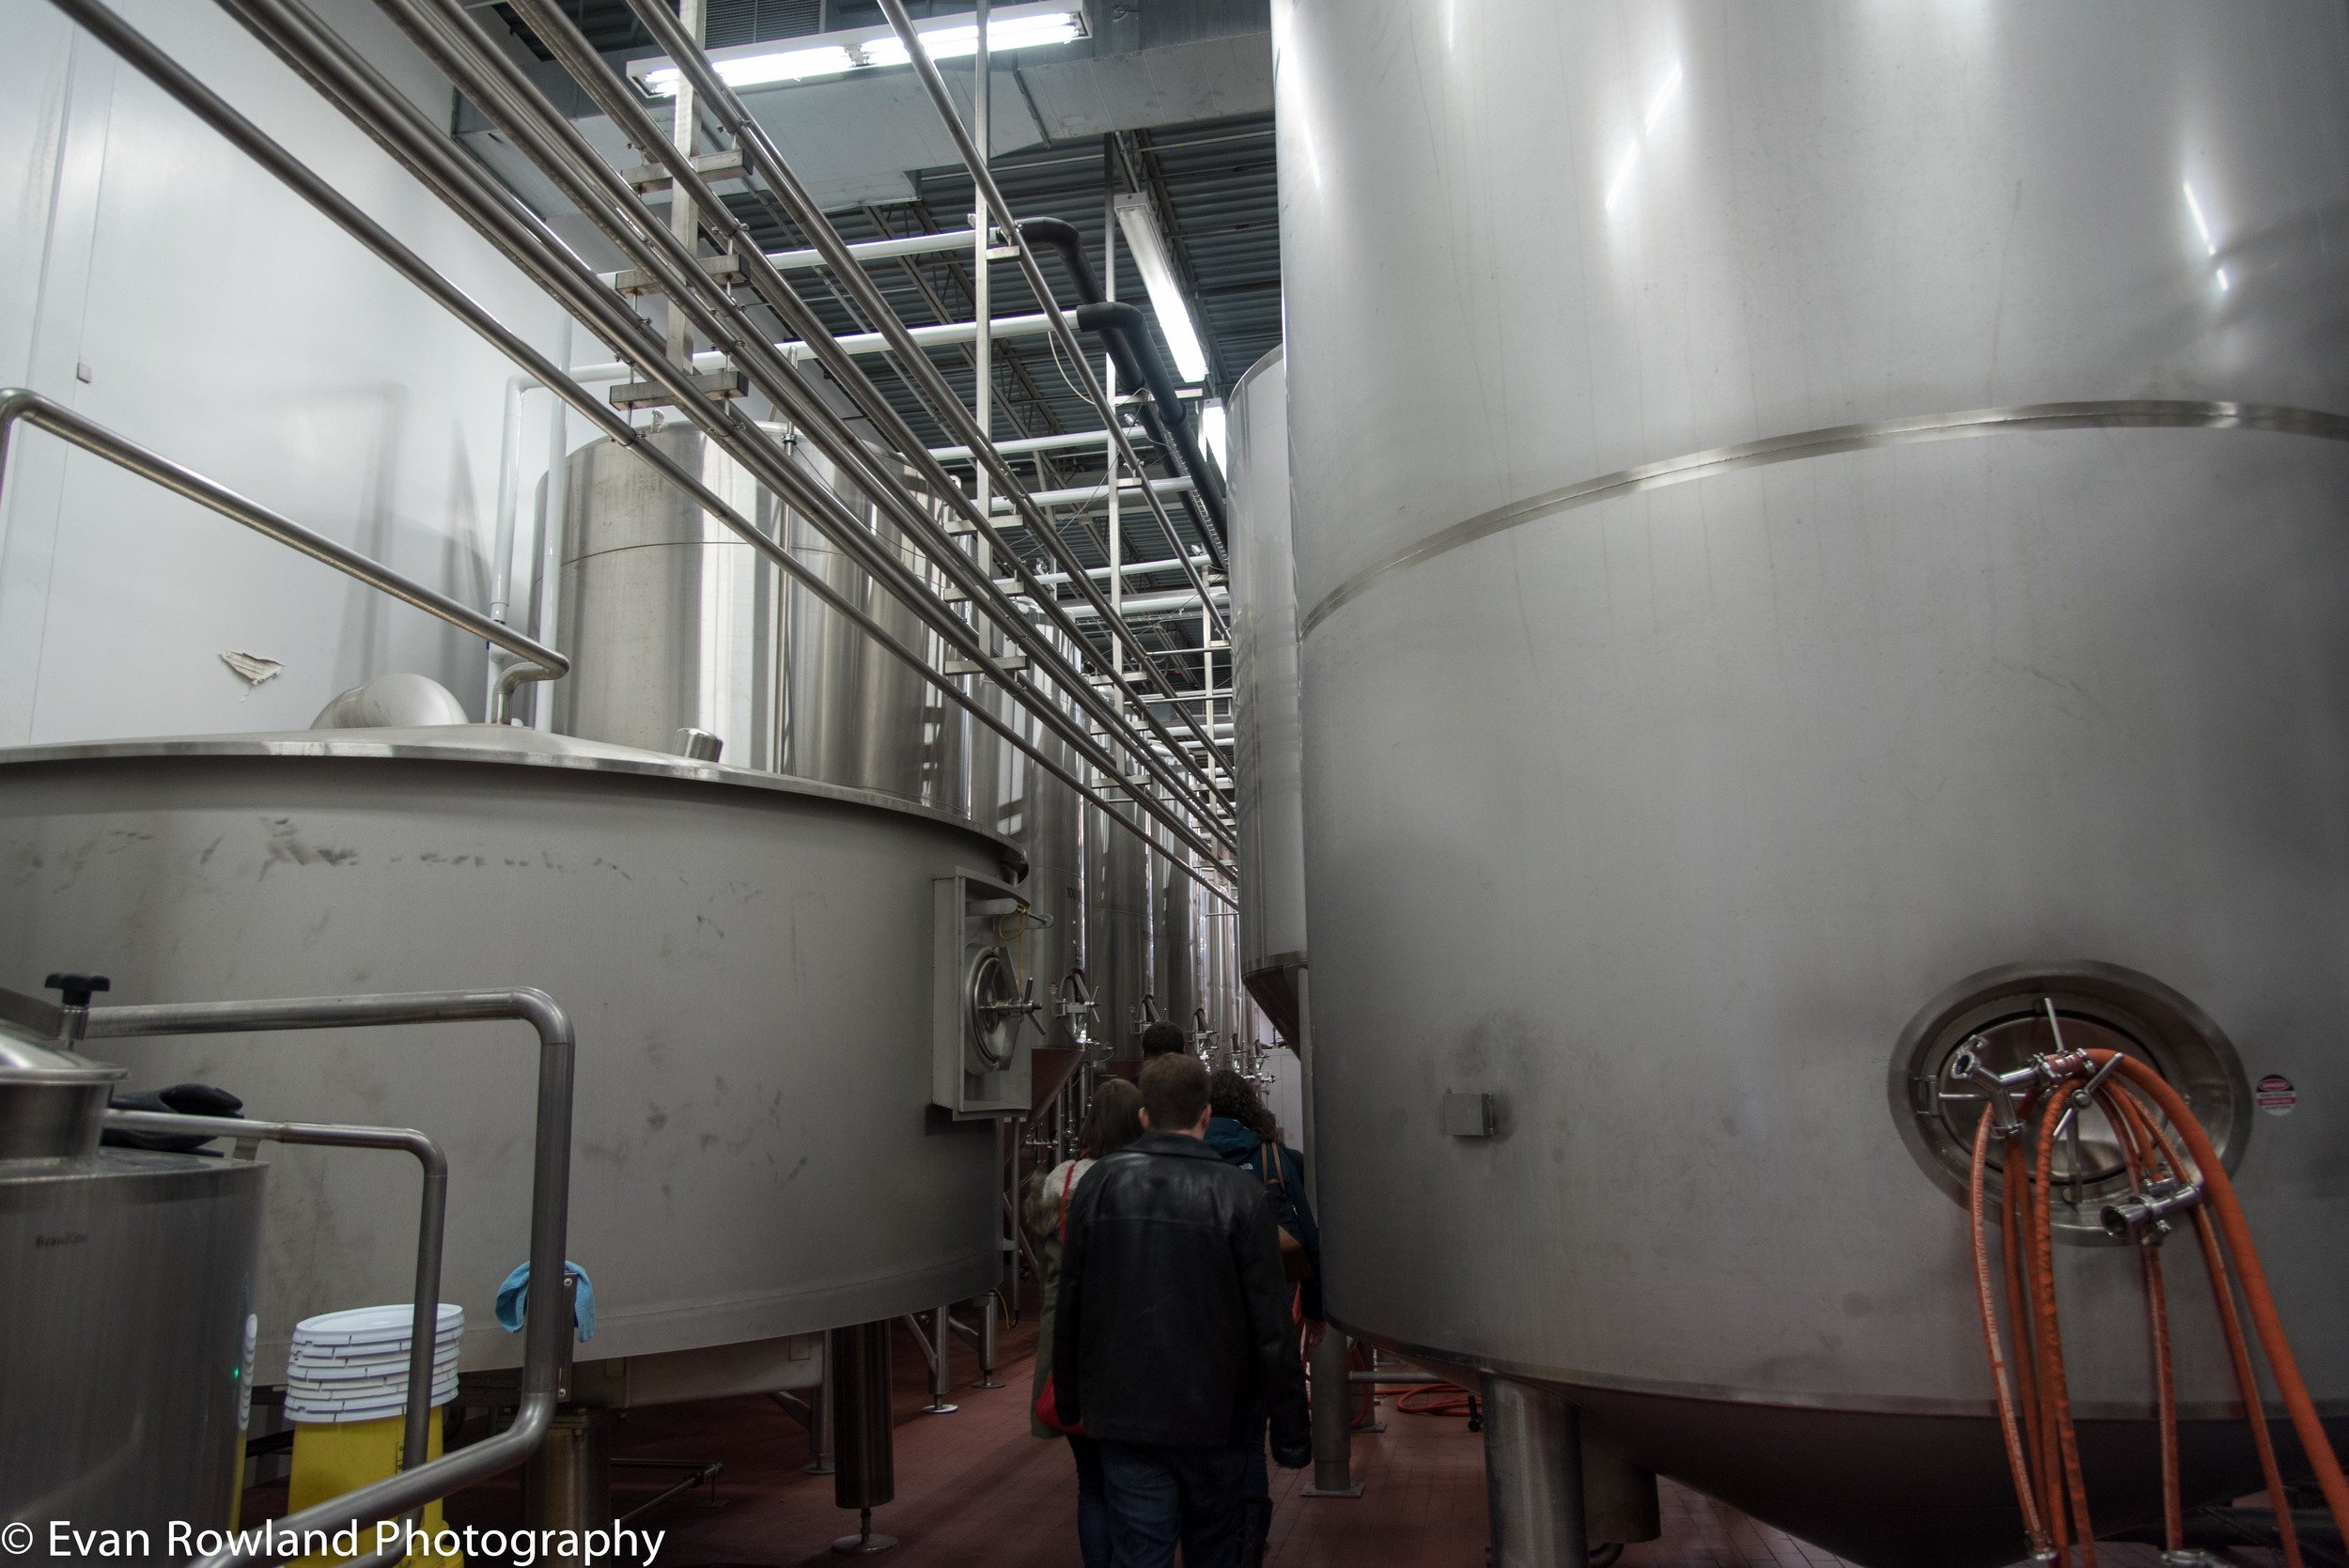 whirlpool and fermenters